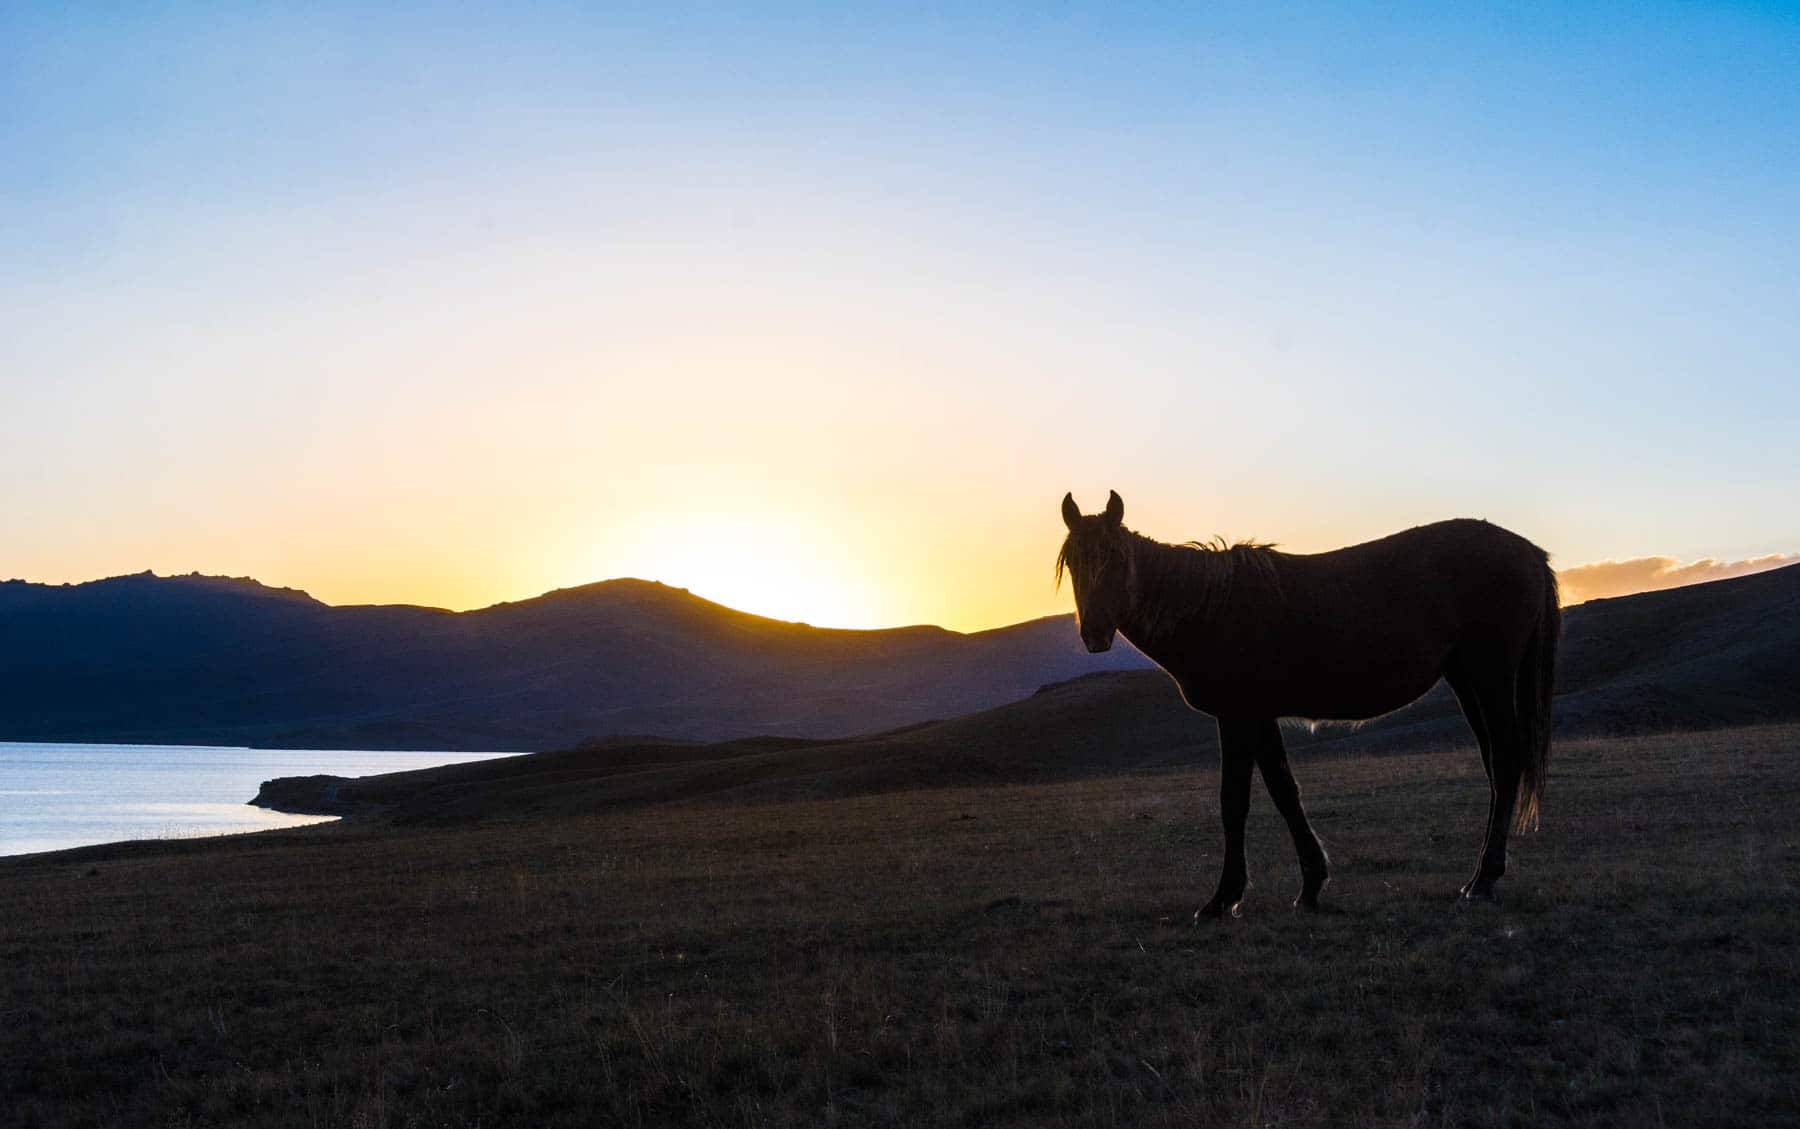 The sun setting behind a horse at Song Kul lake in Kyrgyzstan - Lost With Purpose